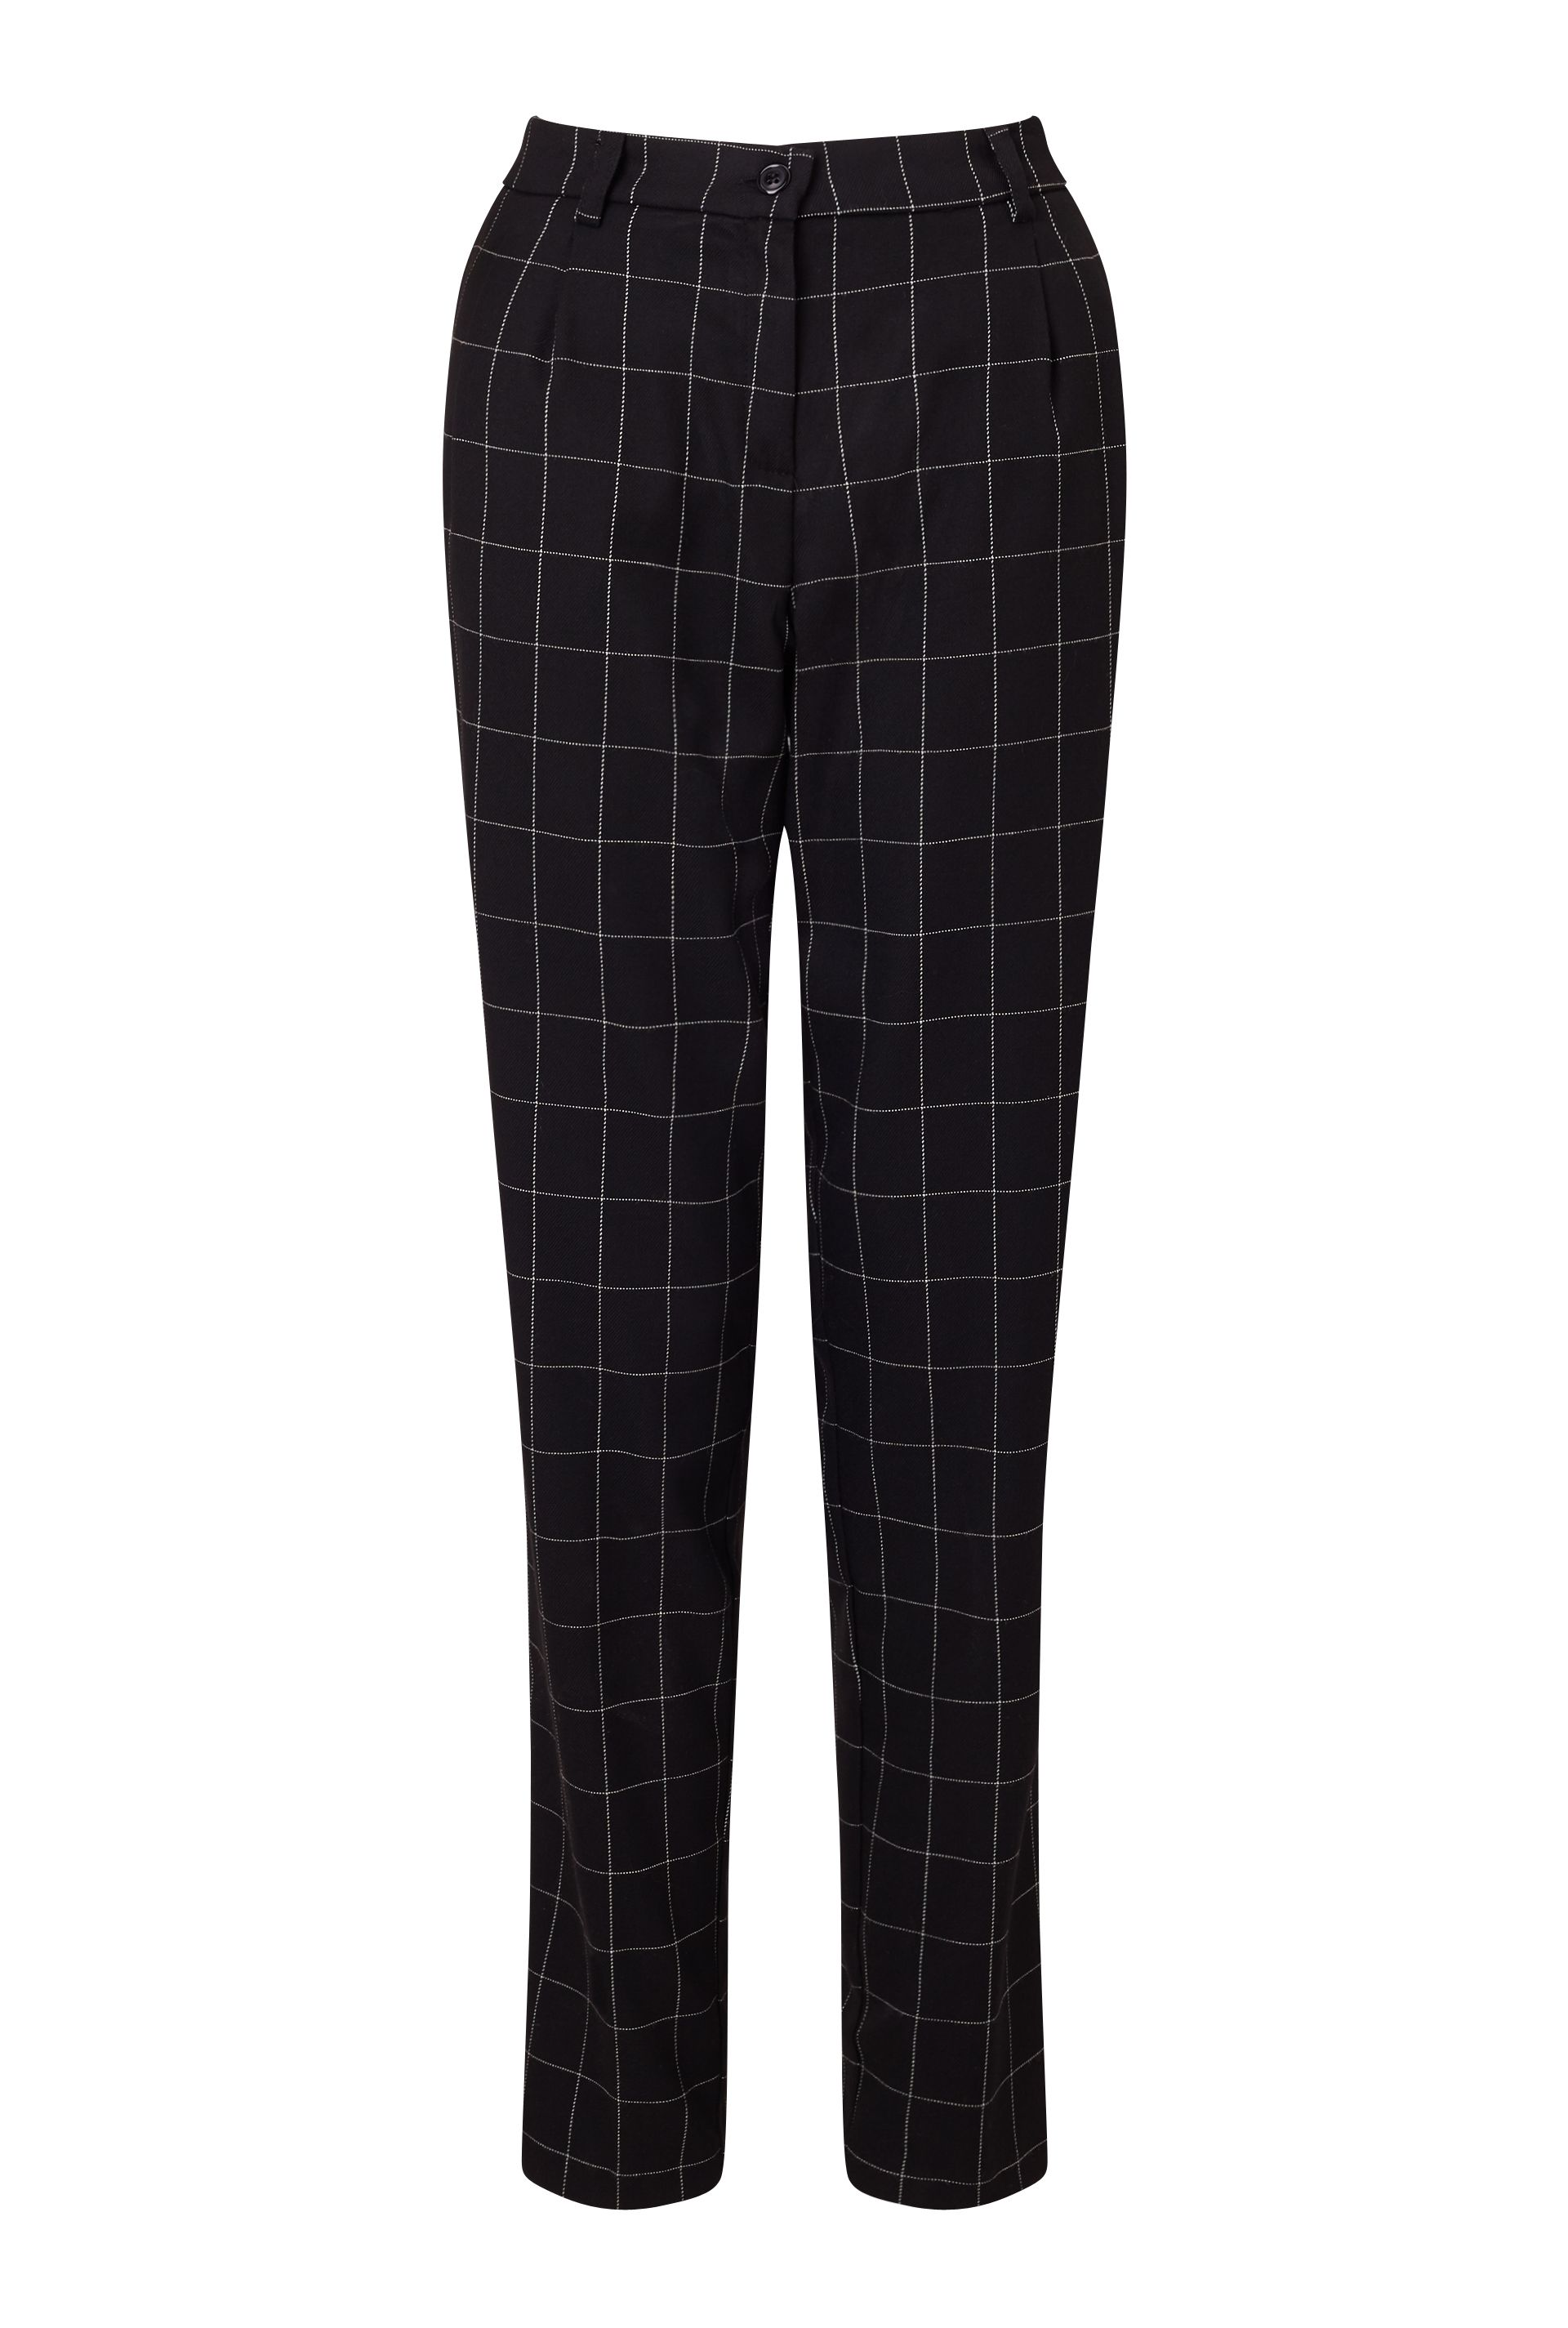 James Lakeland Slim Leg Check Trousers, Black